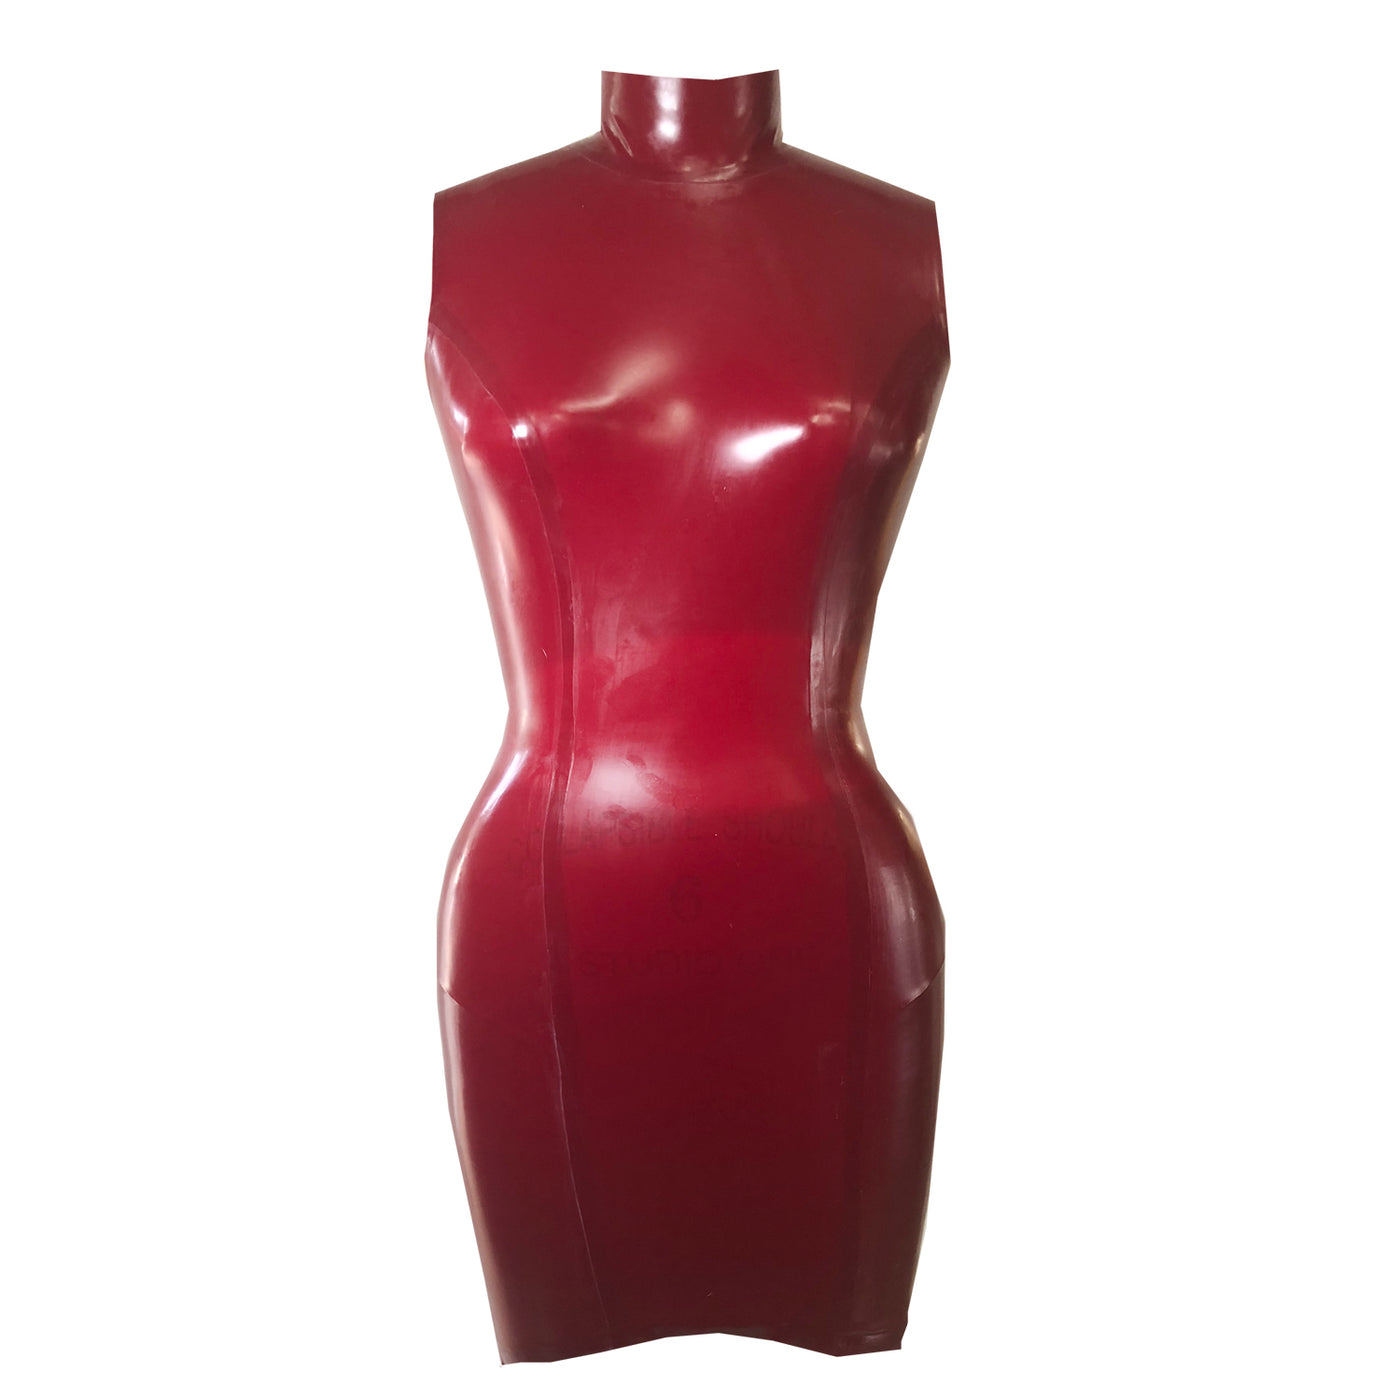 Sleeveless Dress - Vex Inc. | Latex Clothing